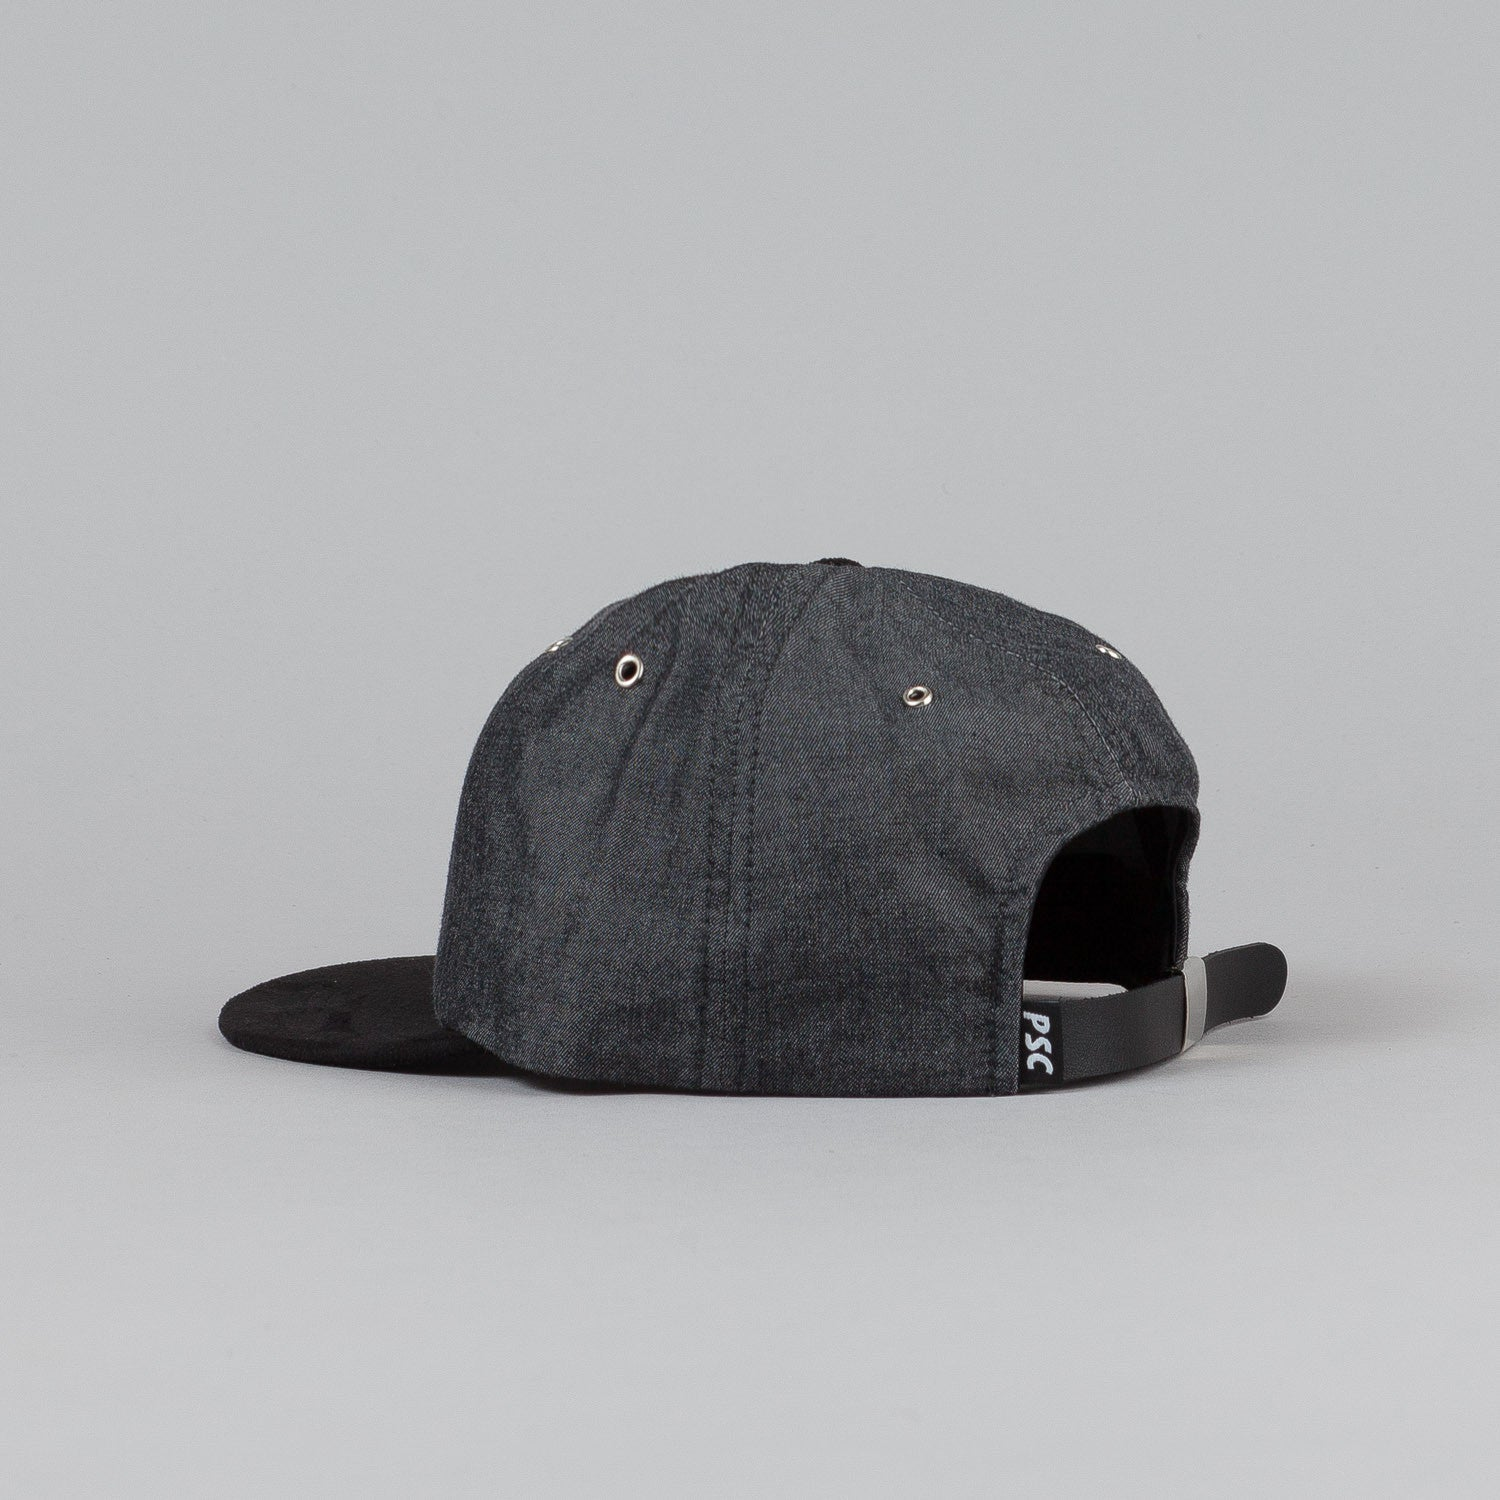 Polar Soft Denim Cap Black Denim / Black Suede / Black Leather